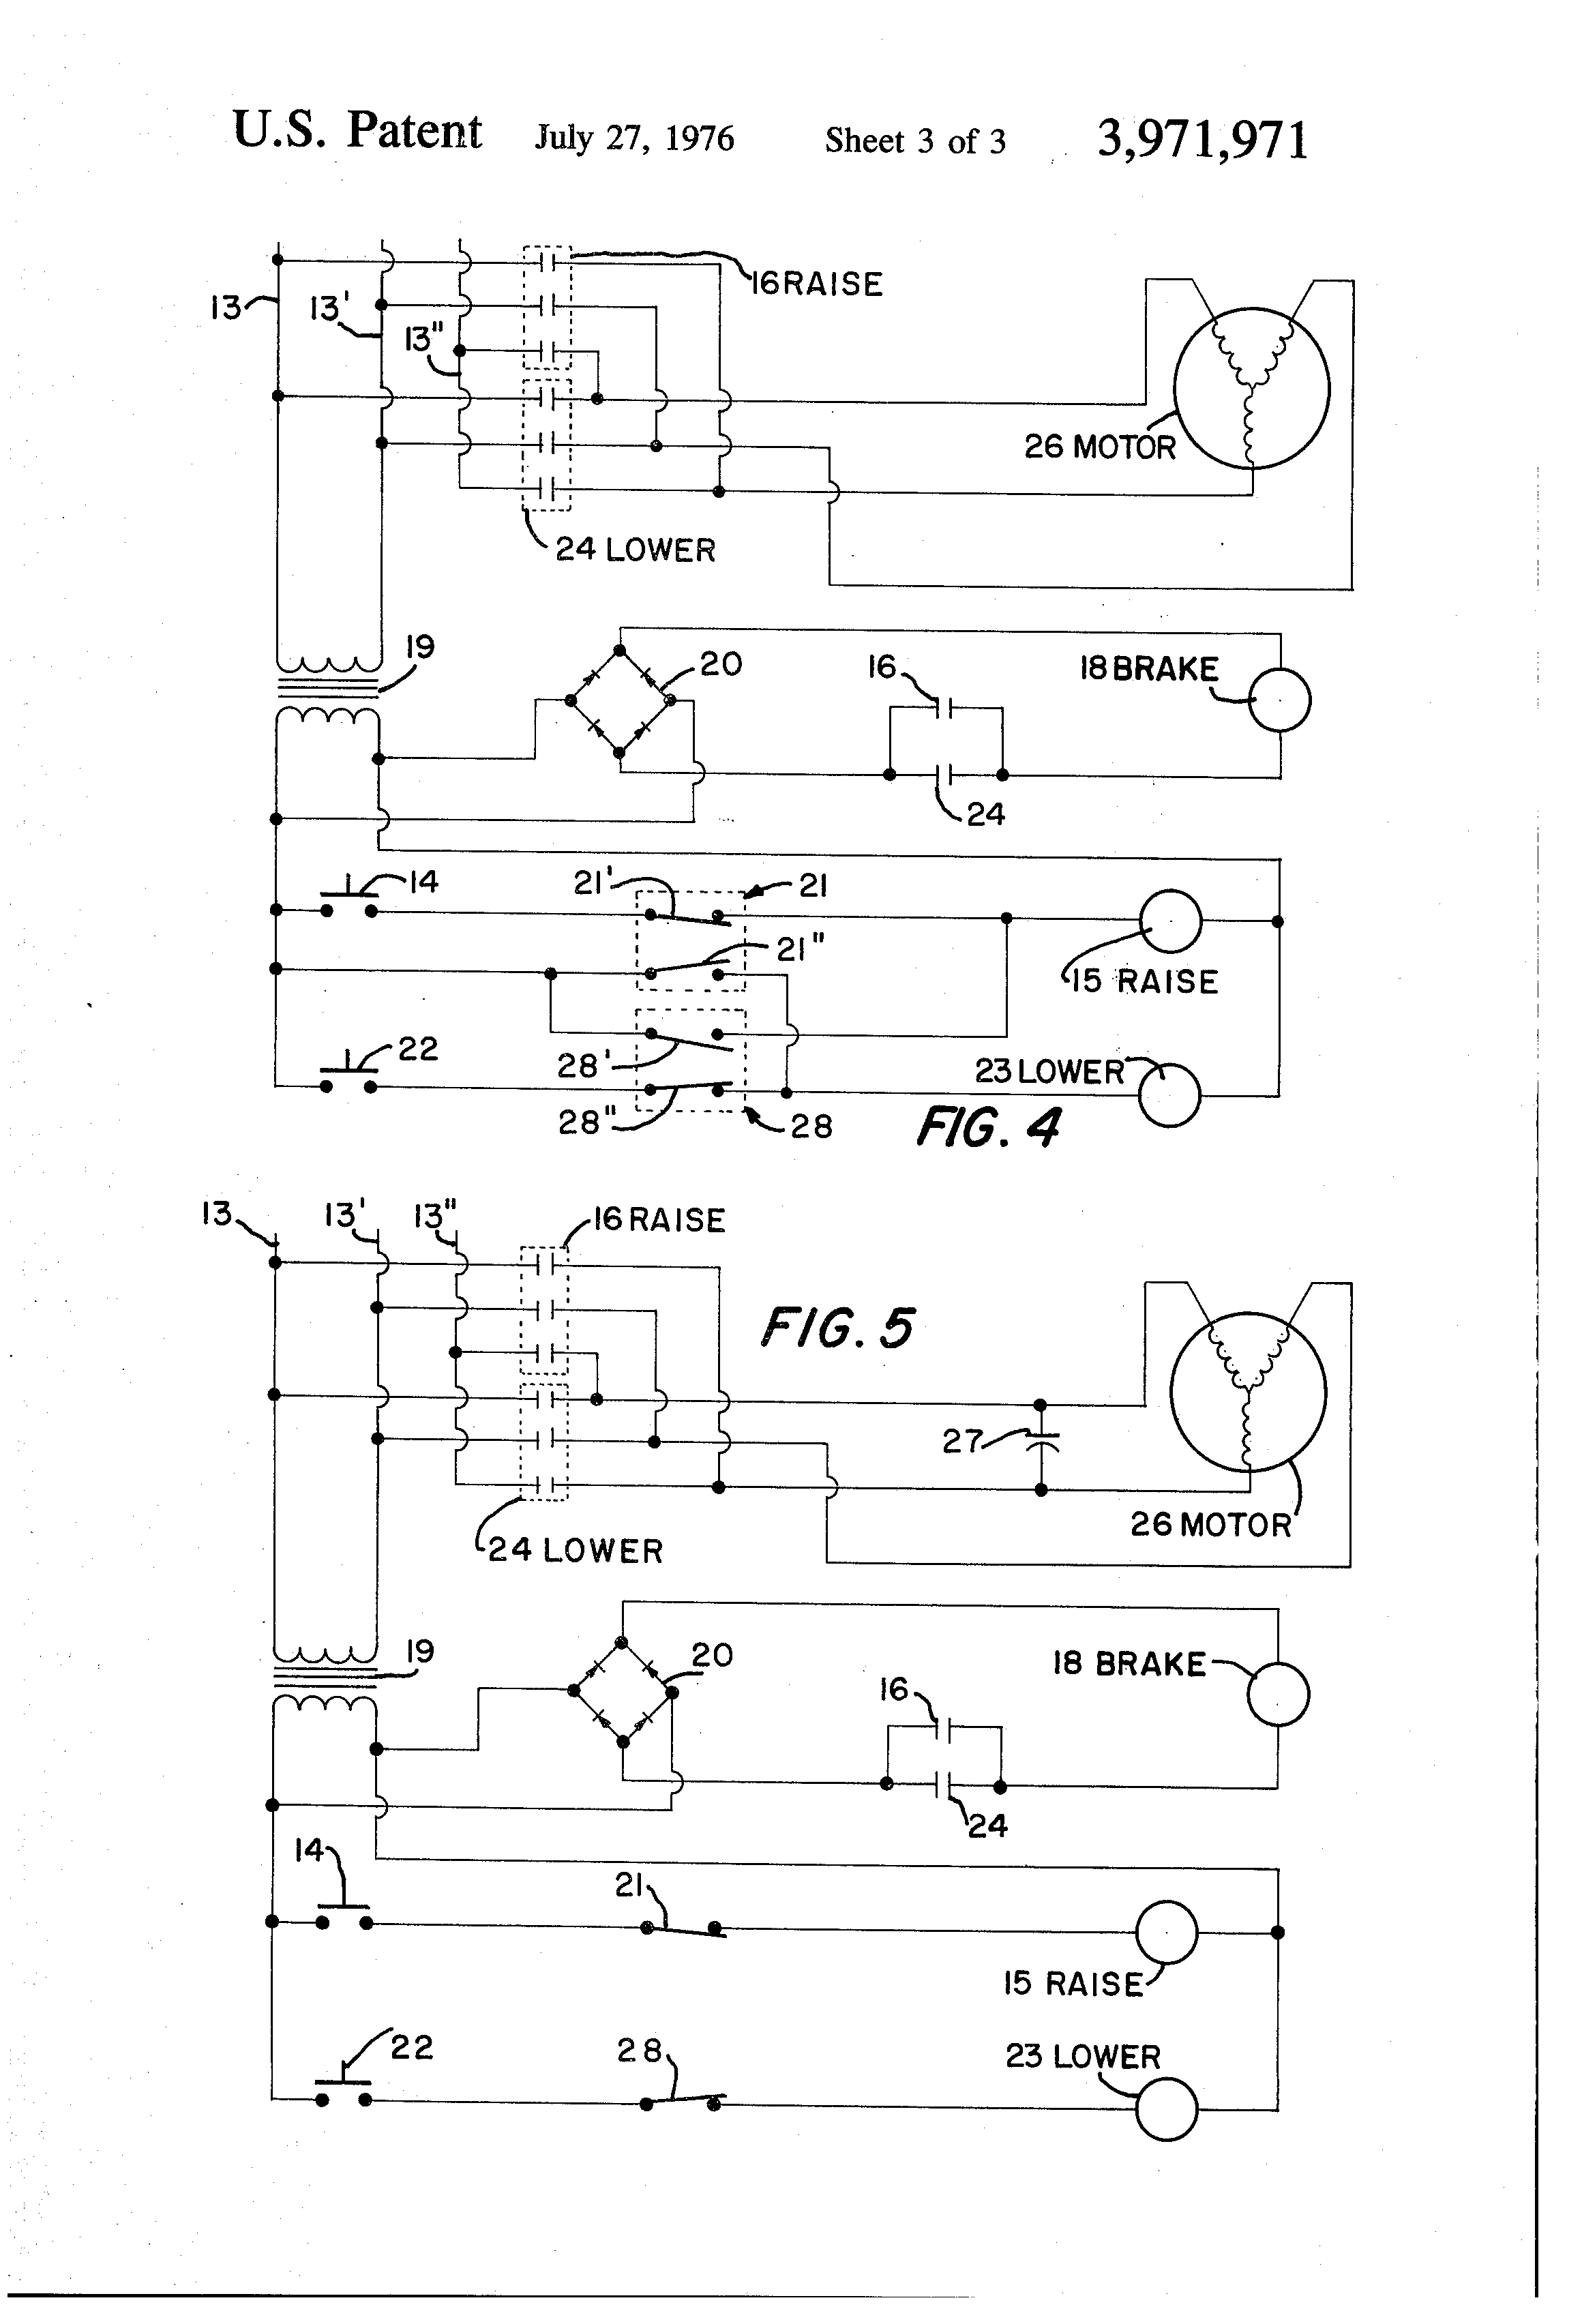 US3971971 3 demag hoist wiring diagram demag wiring diagrams instruction demag crane wiring diagram at reclaimingppi.co